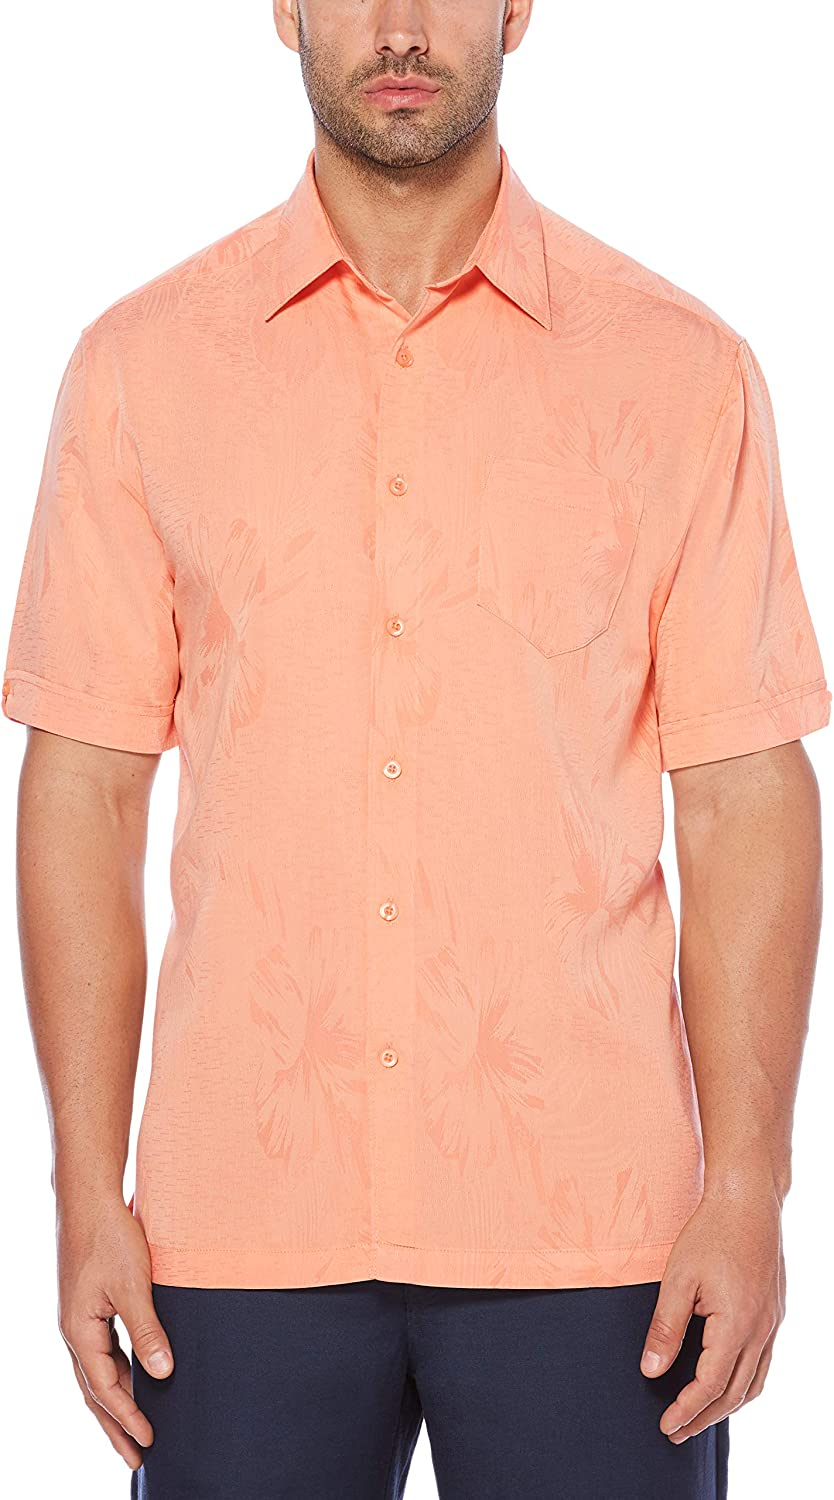 Cubavera Mens Short Sleeve Polyester L-Shape Embroidered Button-Down Shirt